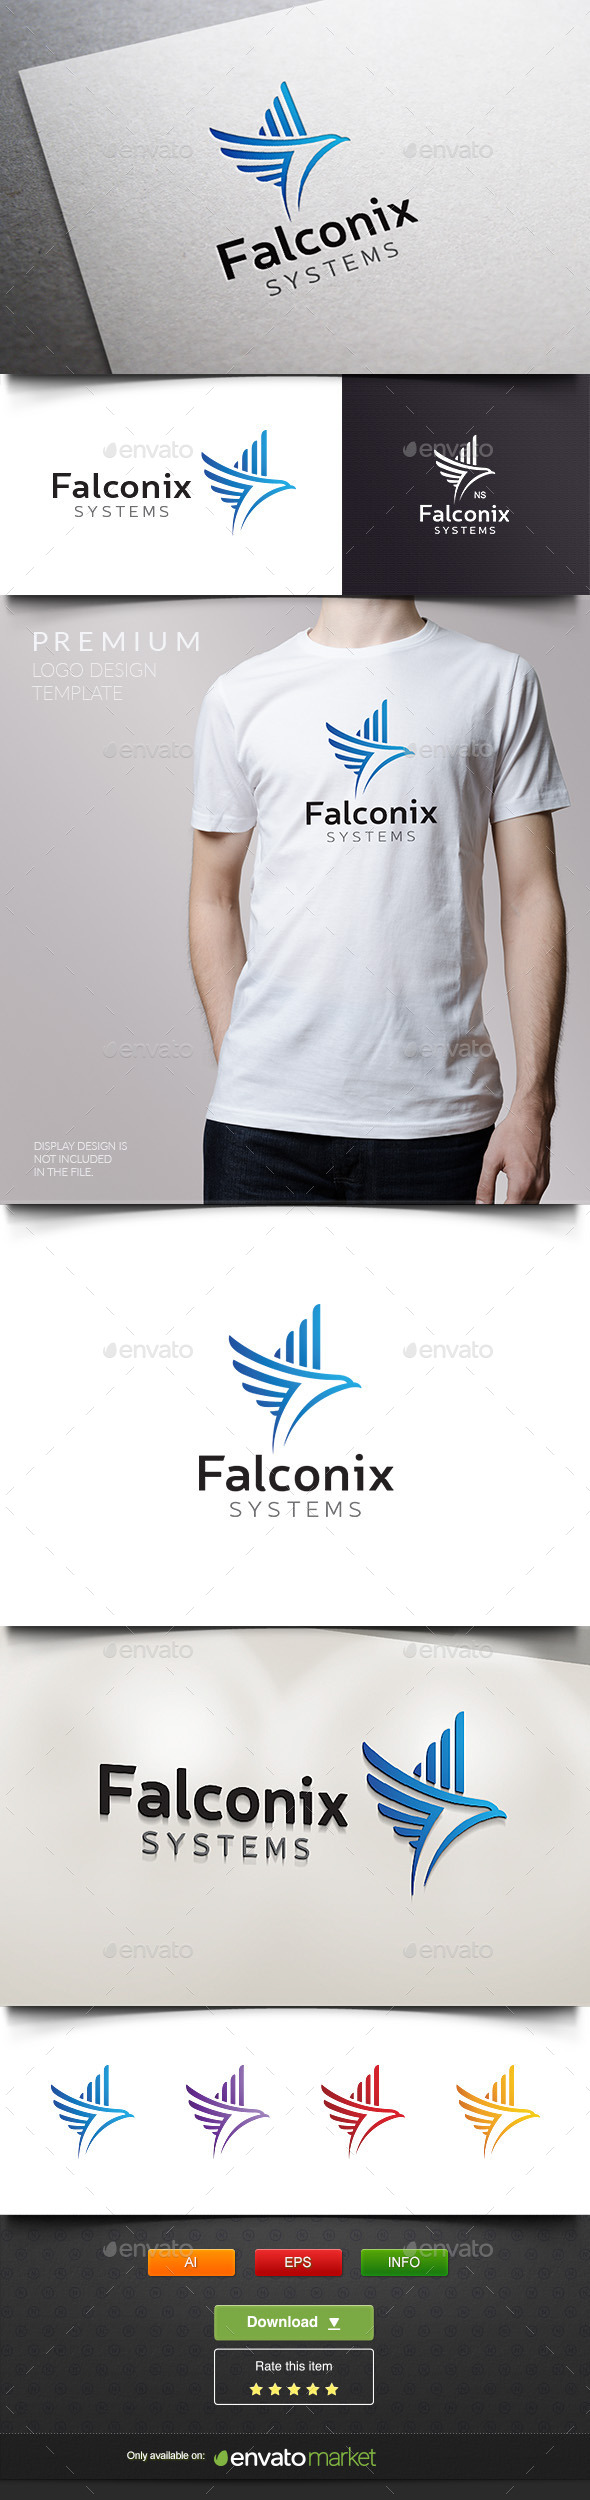 Falconix - Eagle Systems - Abstract Logo Templates